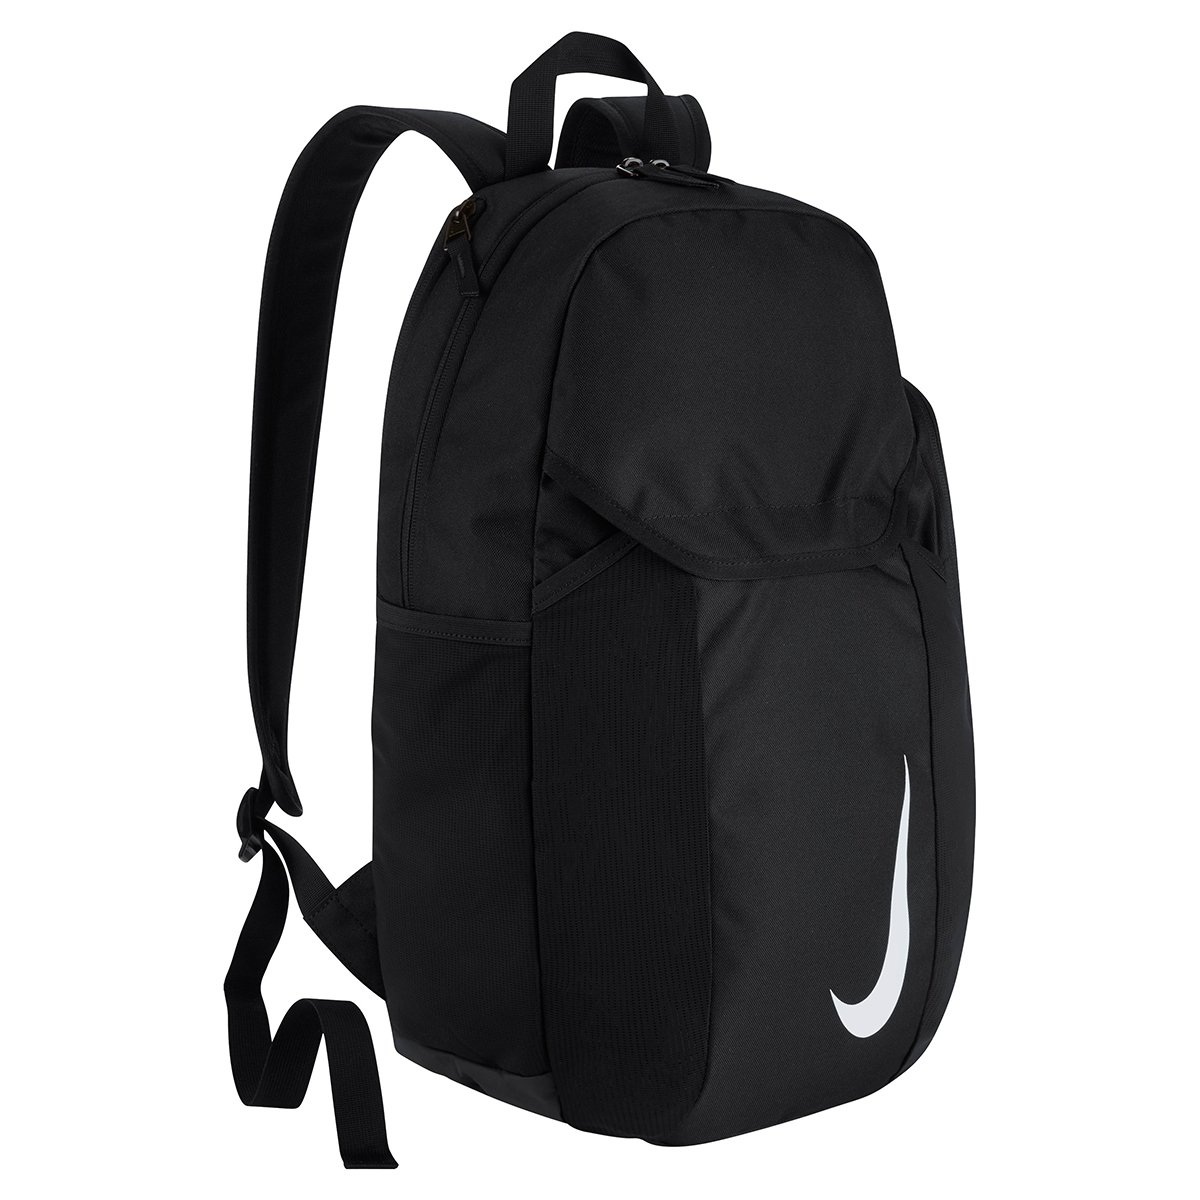 1443b9151 Amazon.com: Nike Academy Team Backpack, One Size, Black: Sports & Outdoors